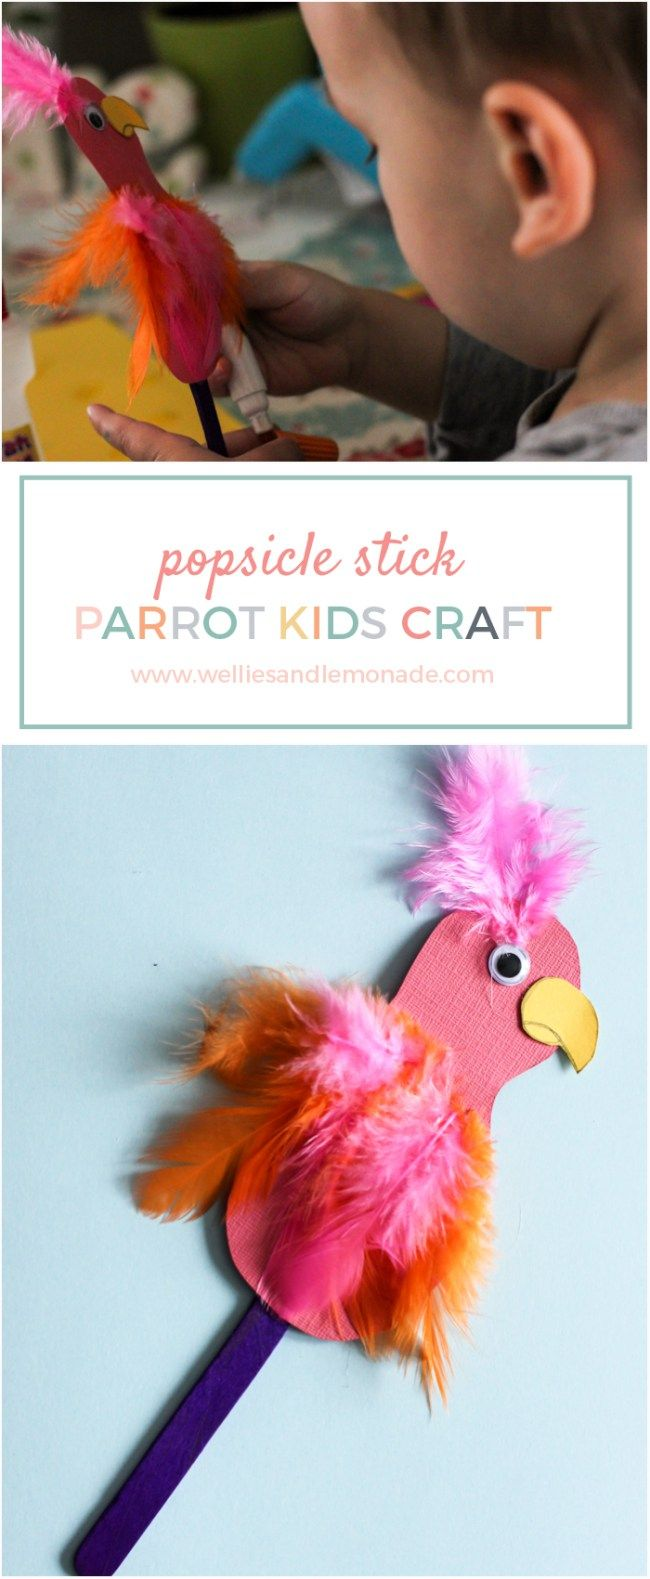 Let your kids have fun with this easy parrot popsicle craft